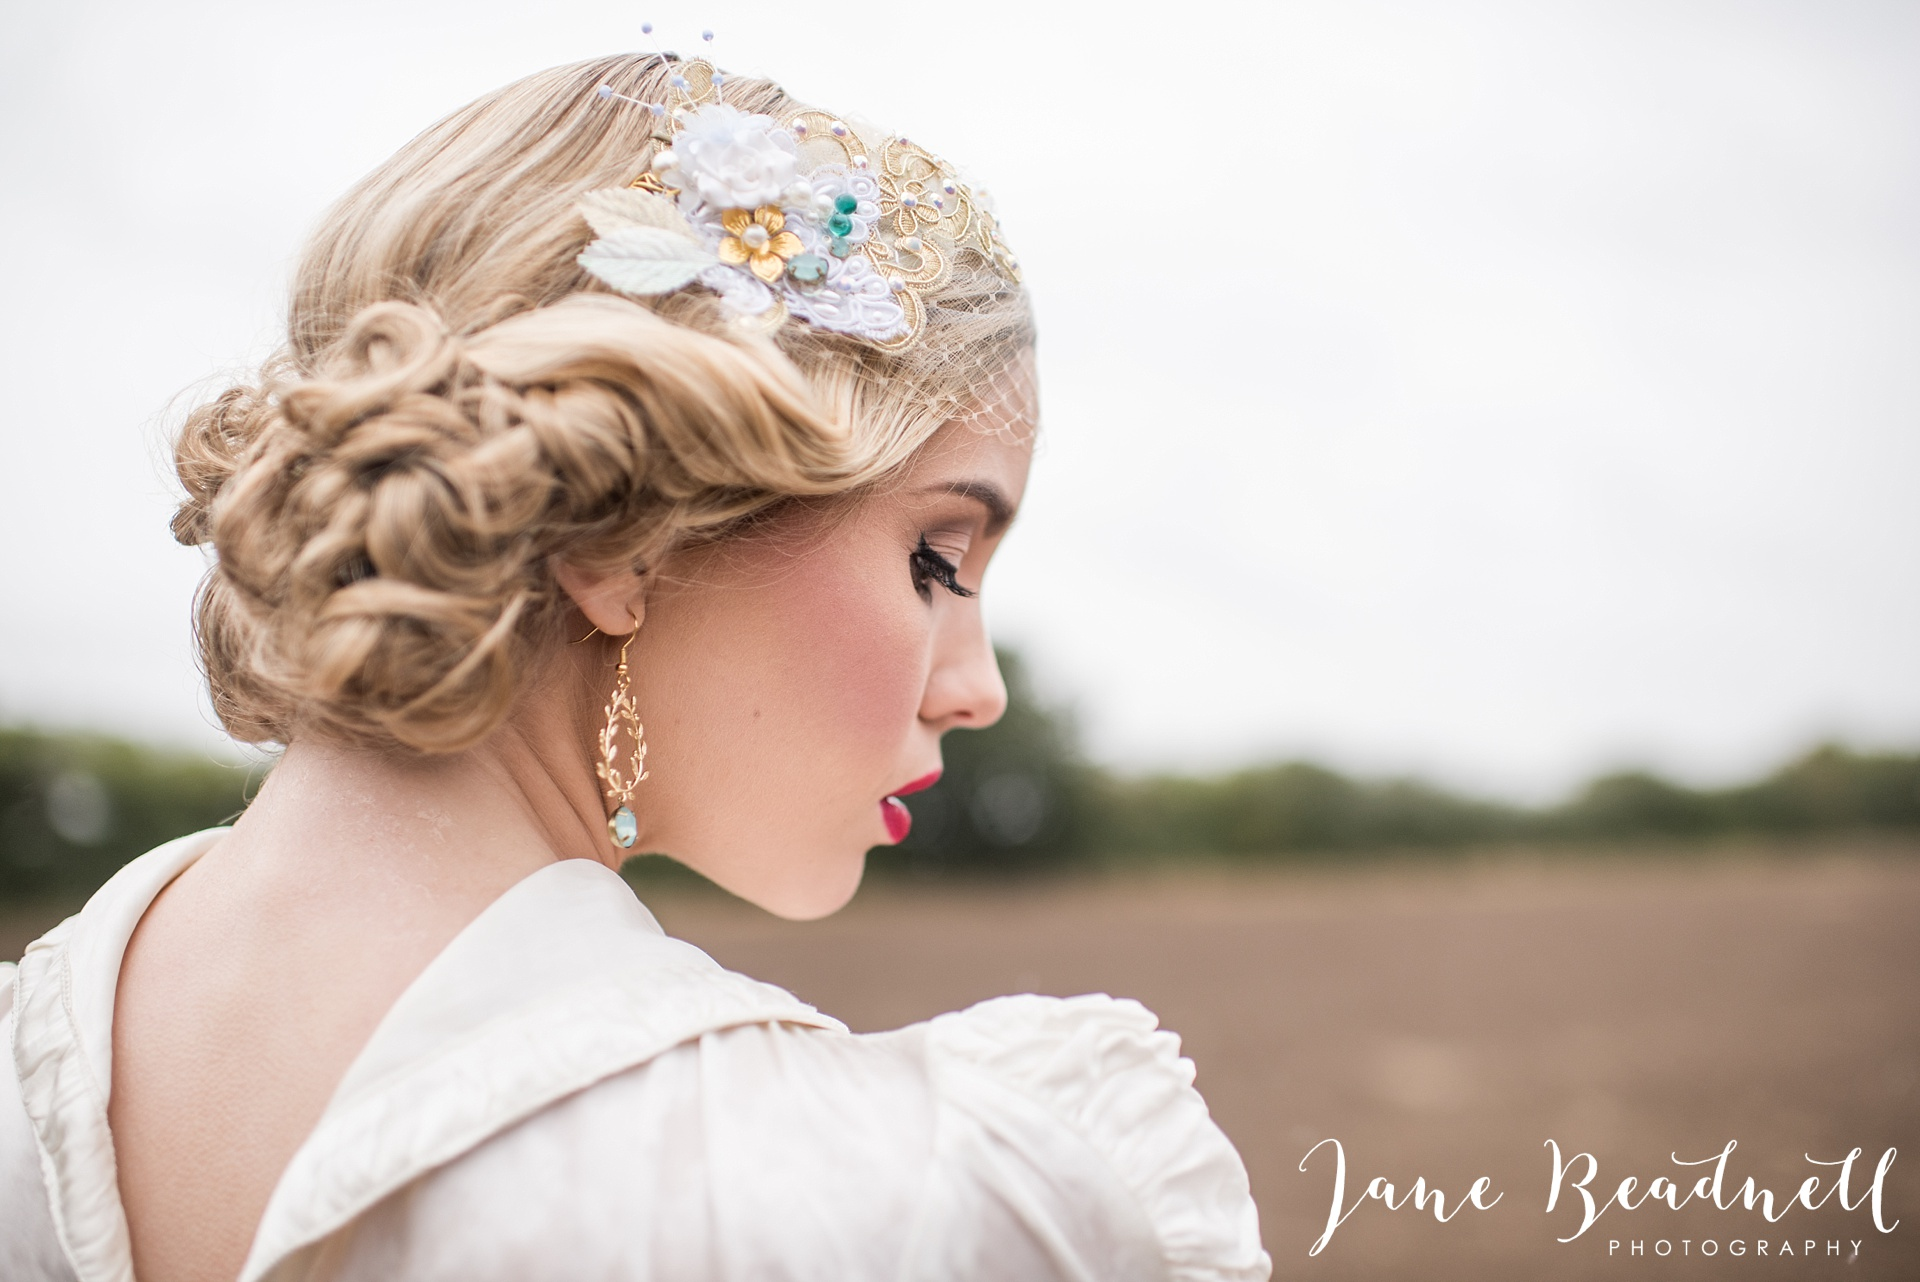 fine-art-wedding-photographer-jane-beadnell-photography-yorkshire-wedding-photographer_0063